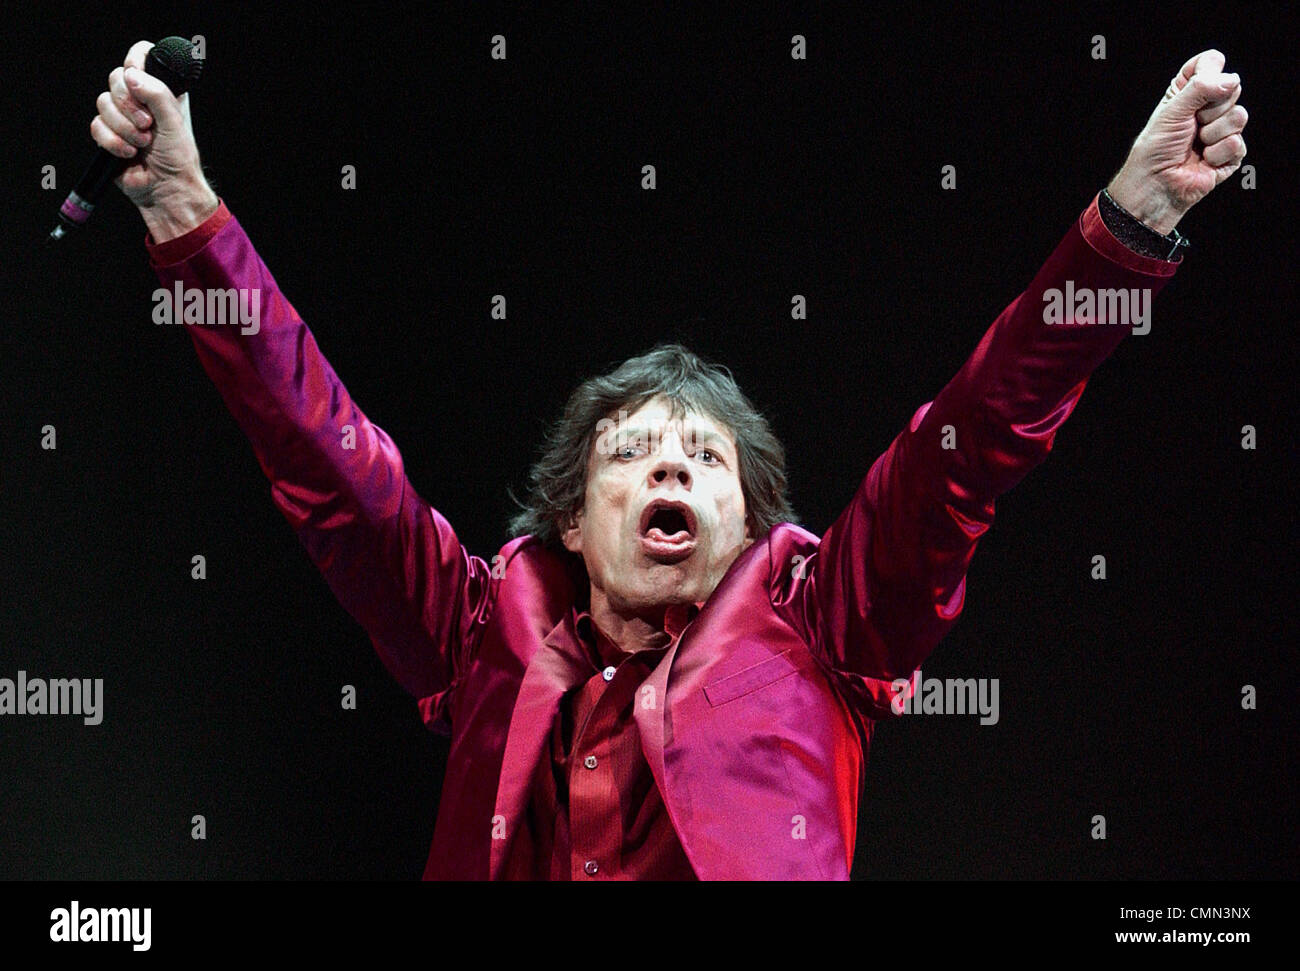 Mick Jagger performing with the Rolling Stones in Boston - Stock Image